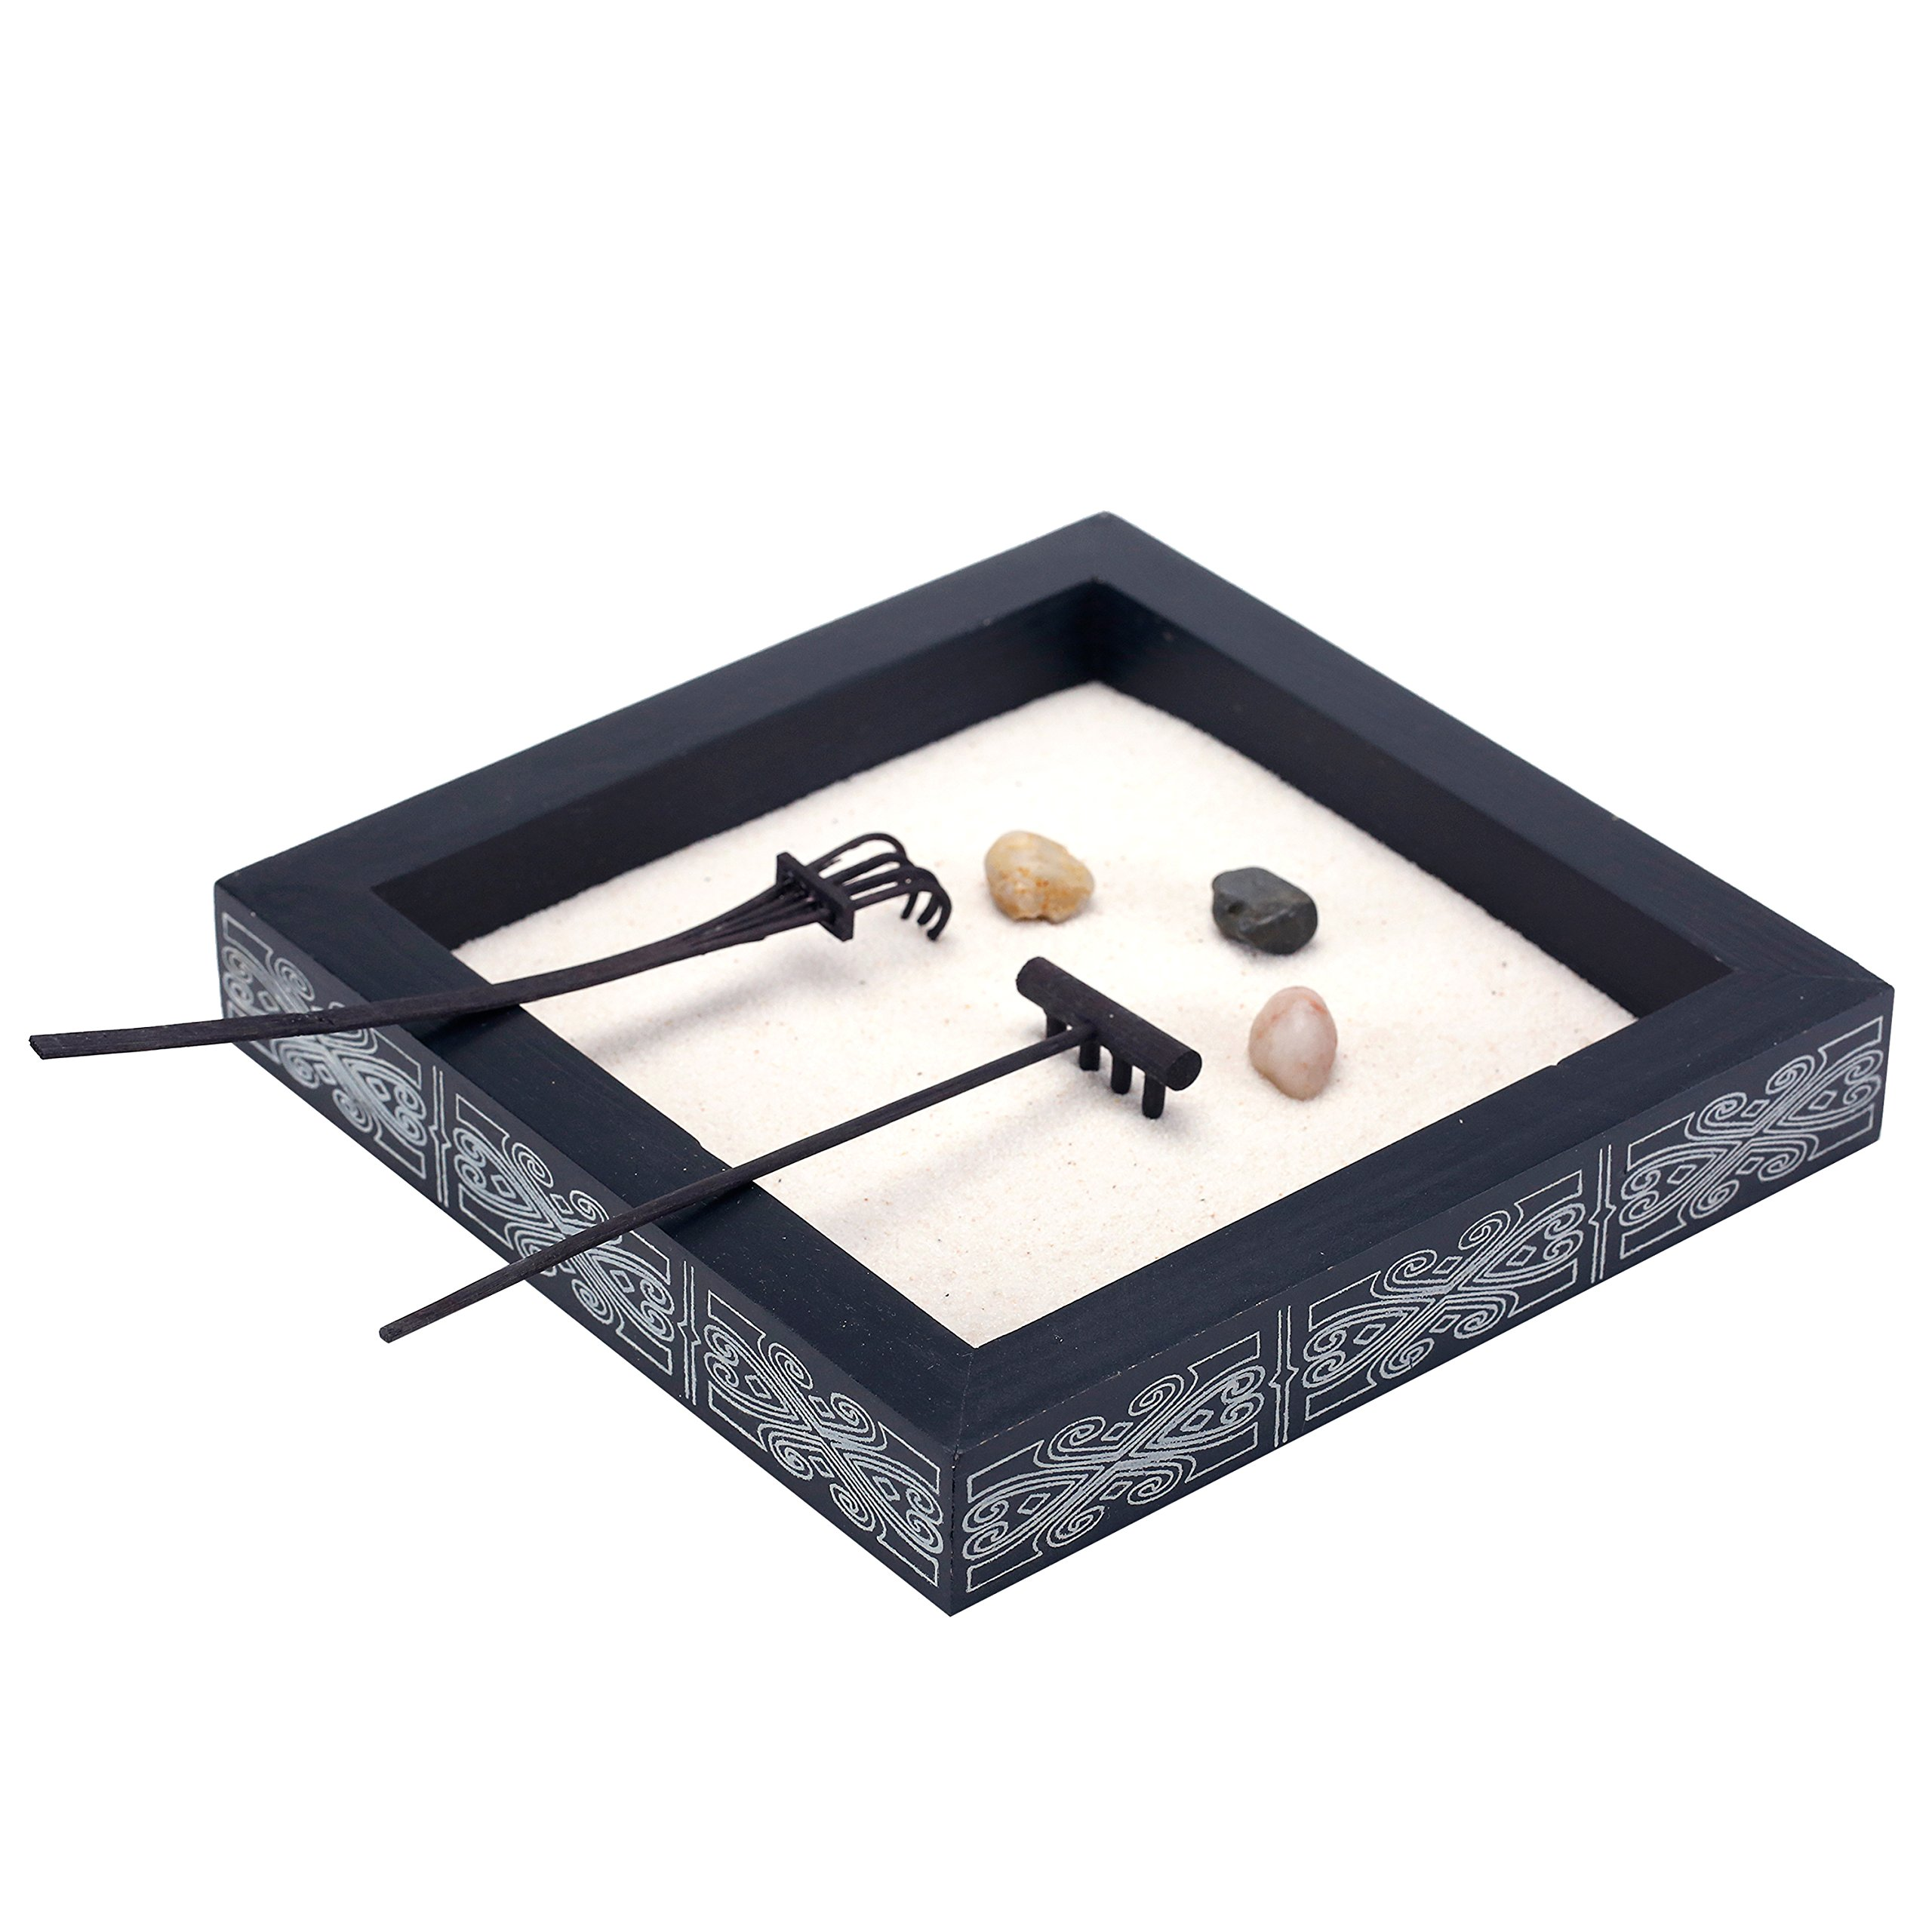 Table Top Zen Garden Buy Minimalist Tabletop Zen Garden Kit With Stones And Rakes In